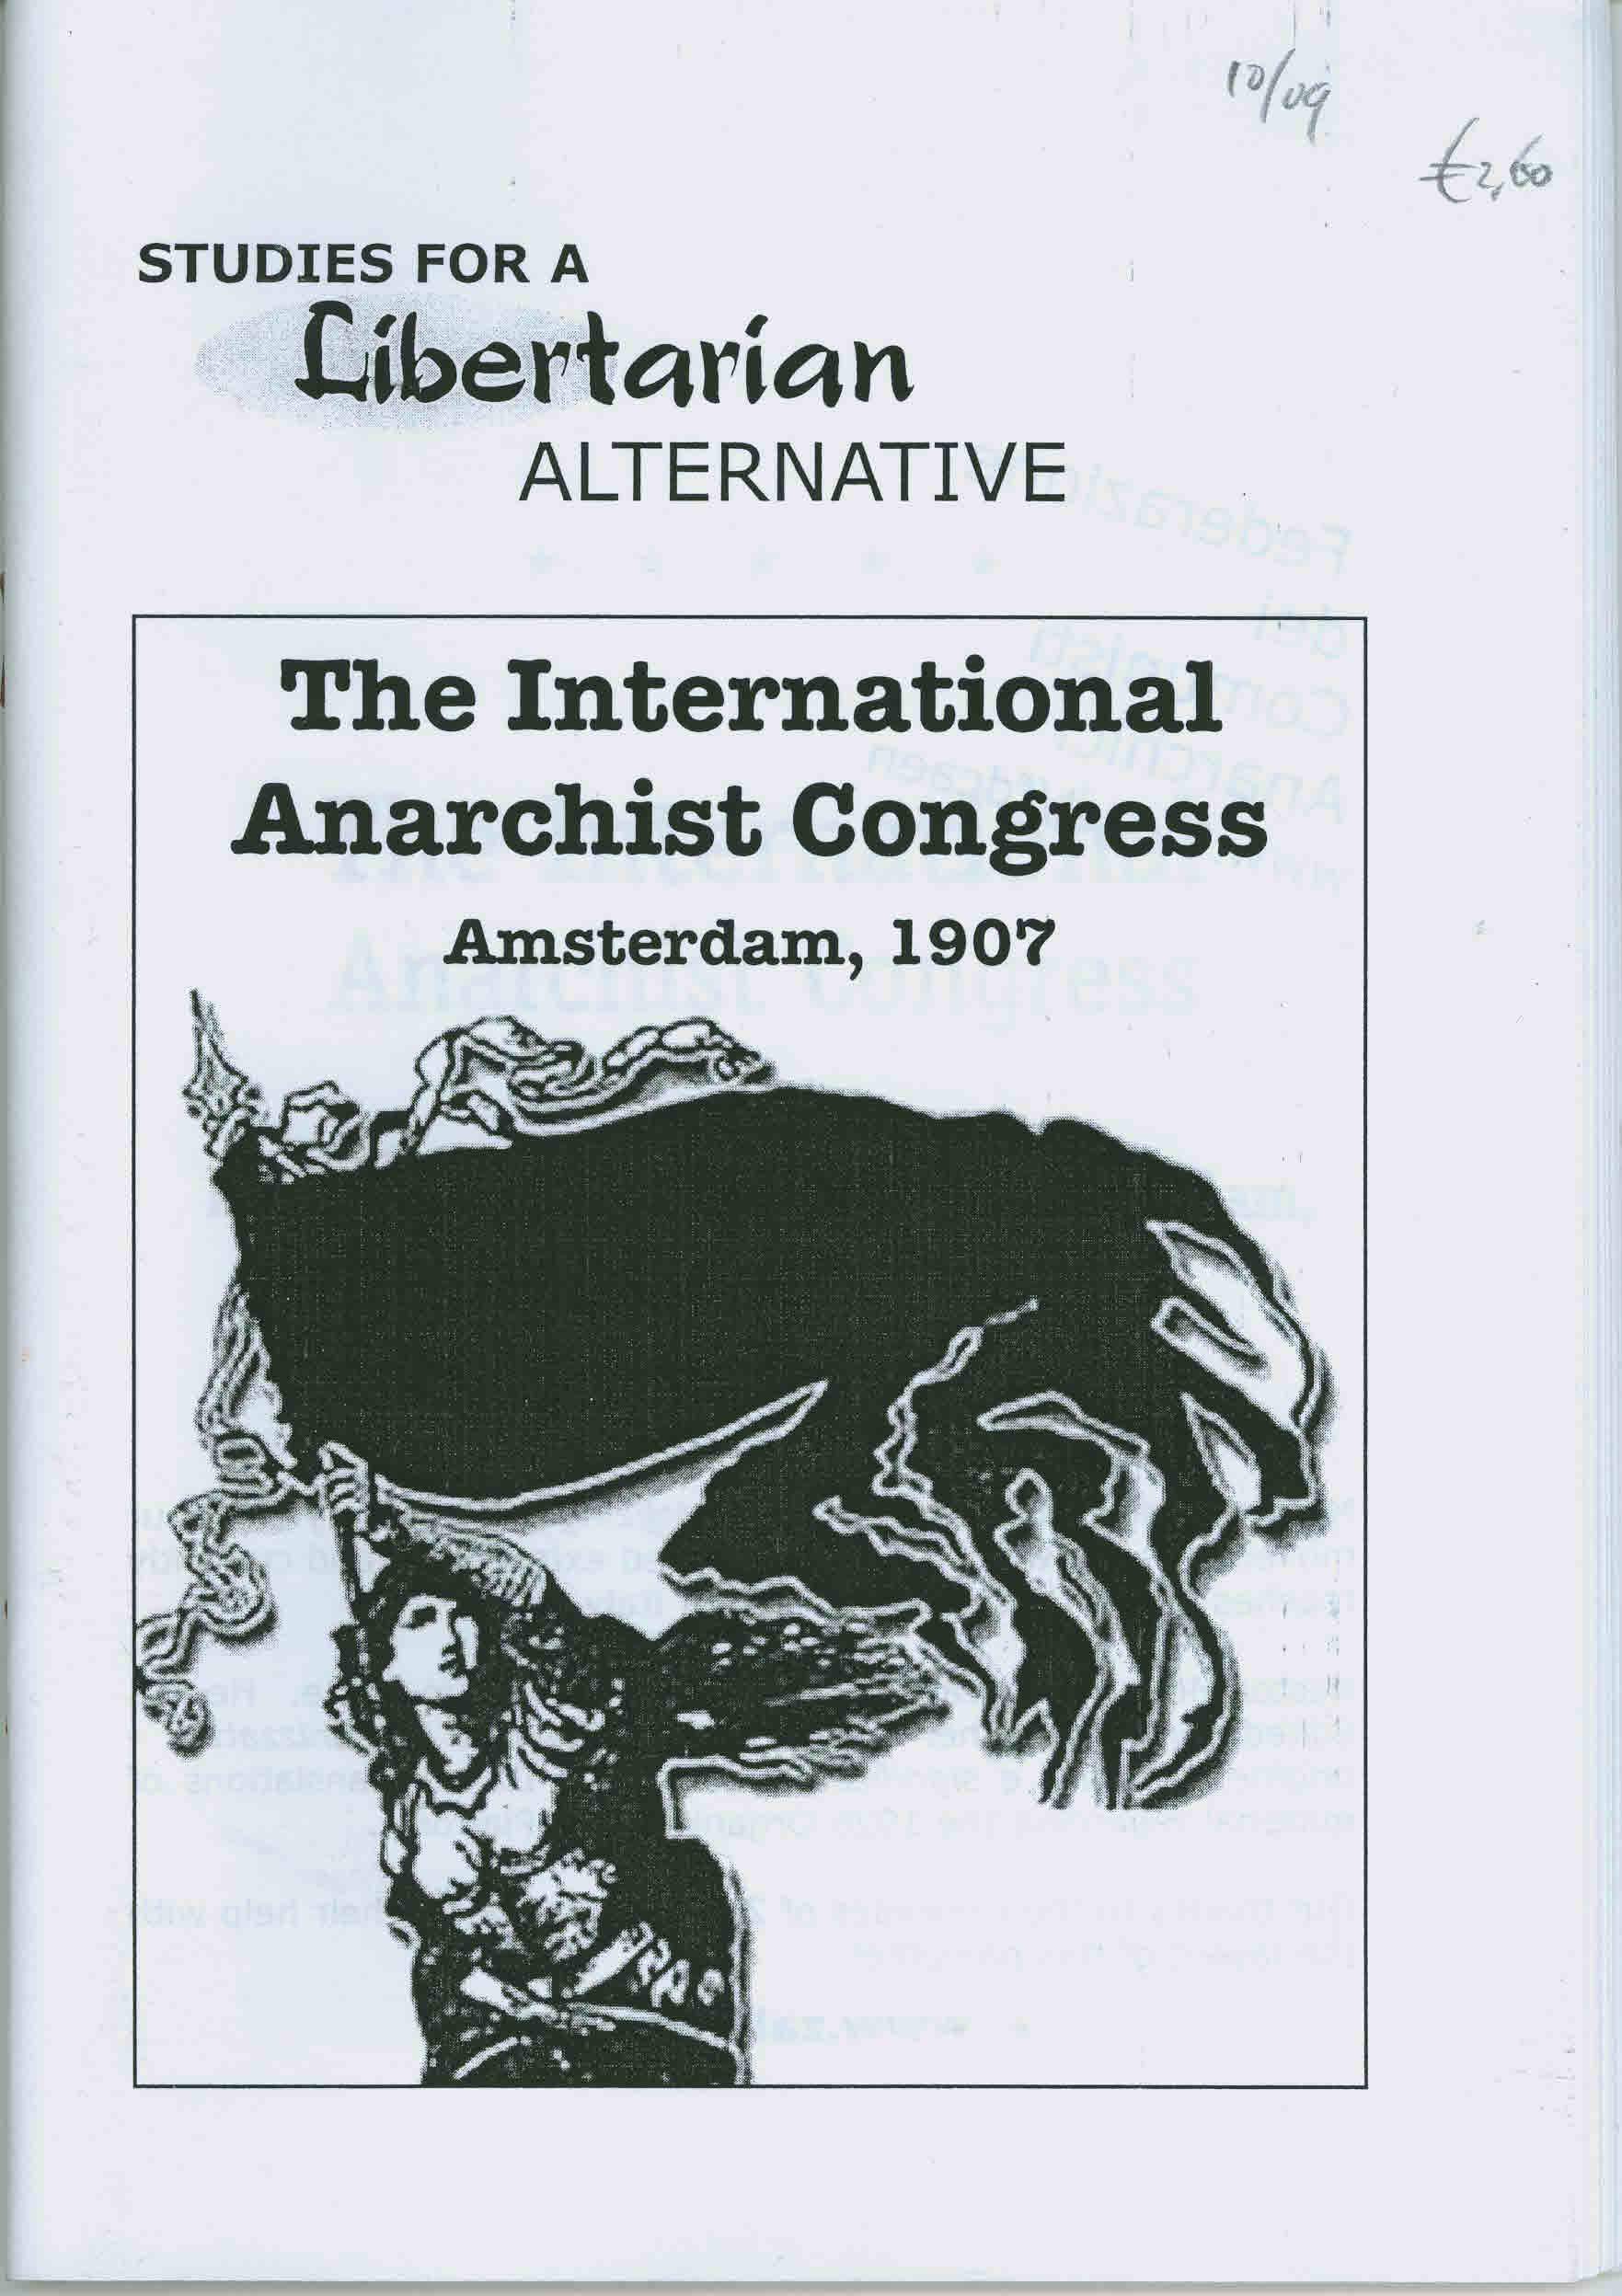 The international Anarchist Congress